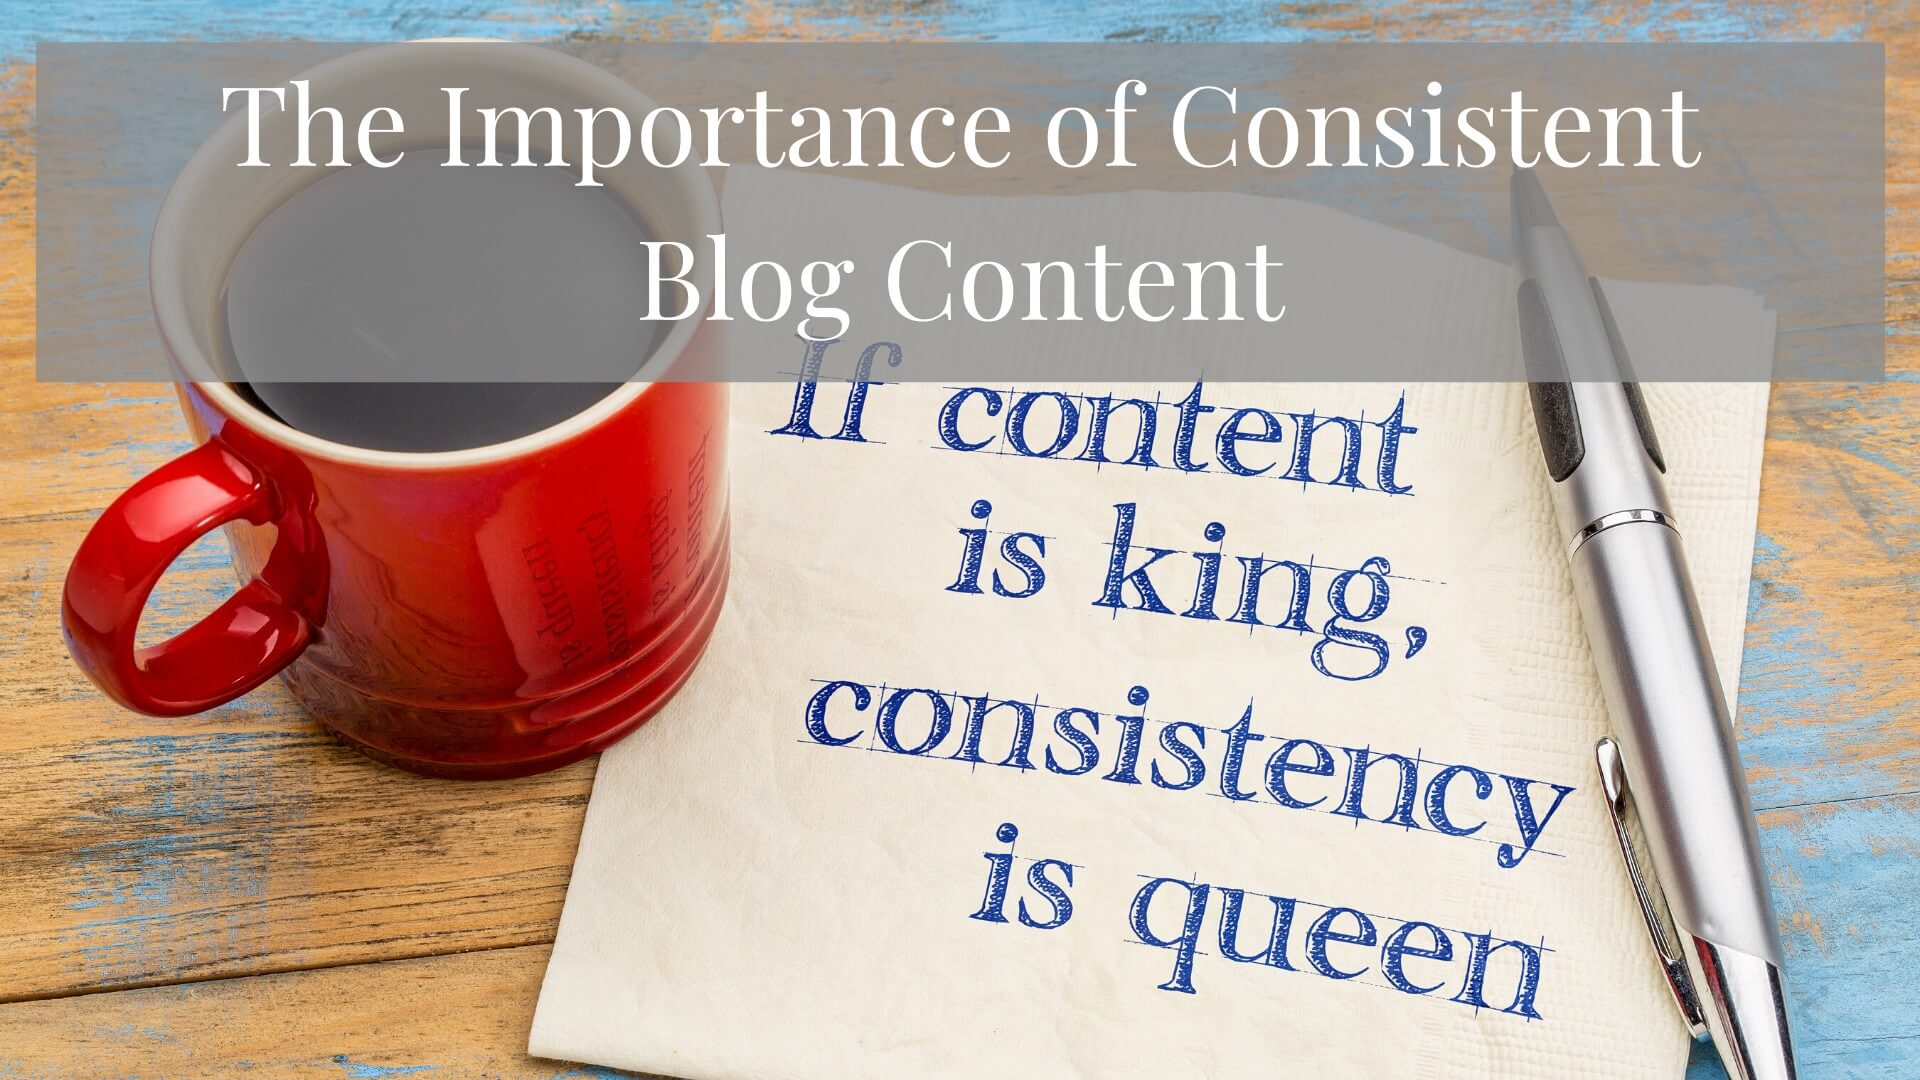 The Importance of Consistent Blog Content